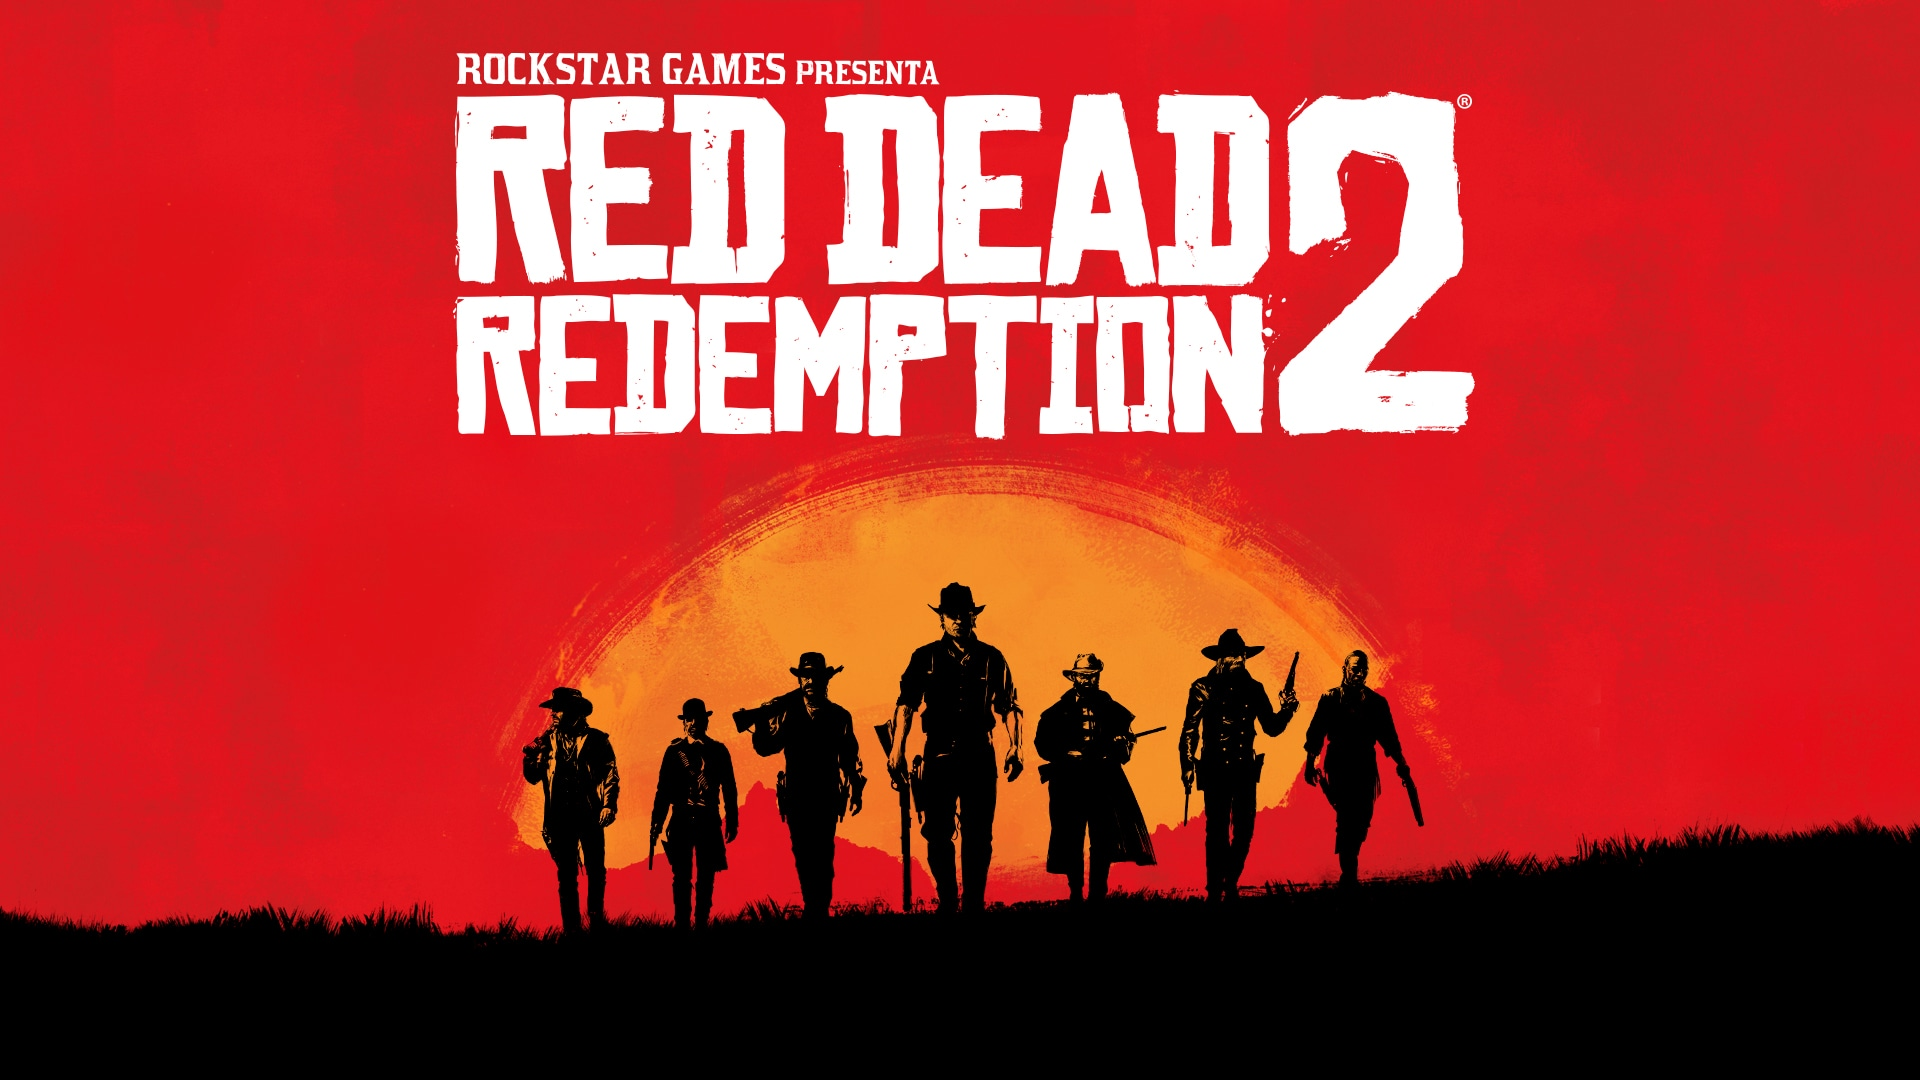 Analisis De Red Dead Redemption 2